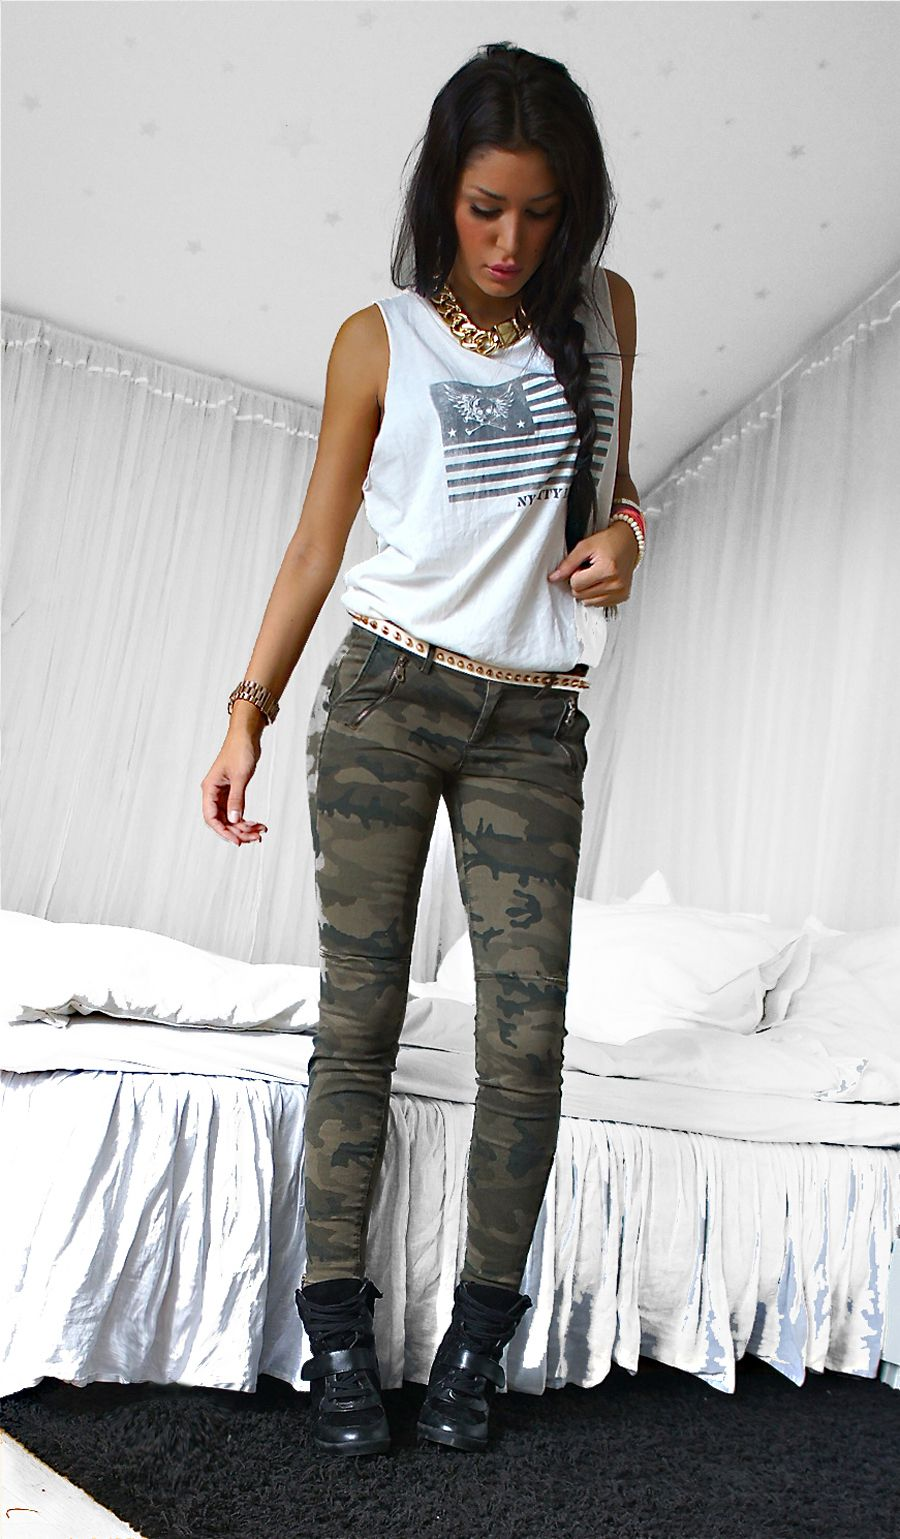 Teen Outfits 2016: Clothes Casual Outift For • Teens • Movies • Girls • Women